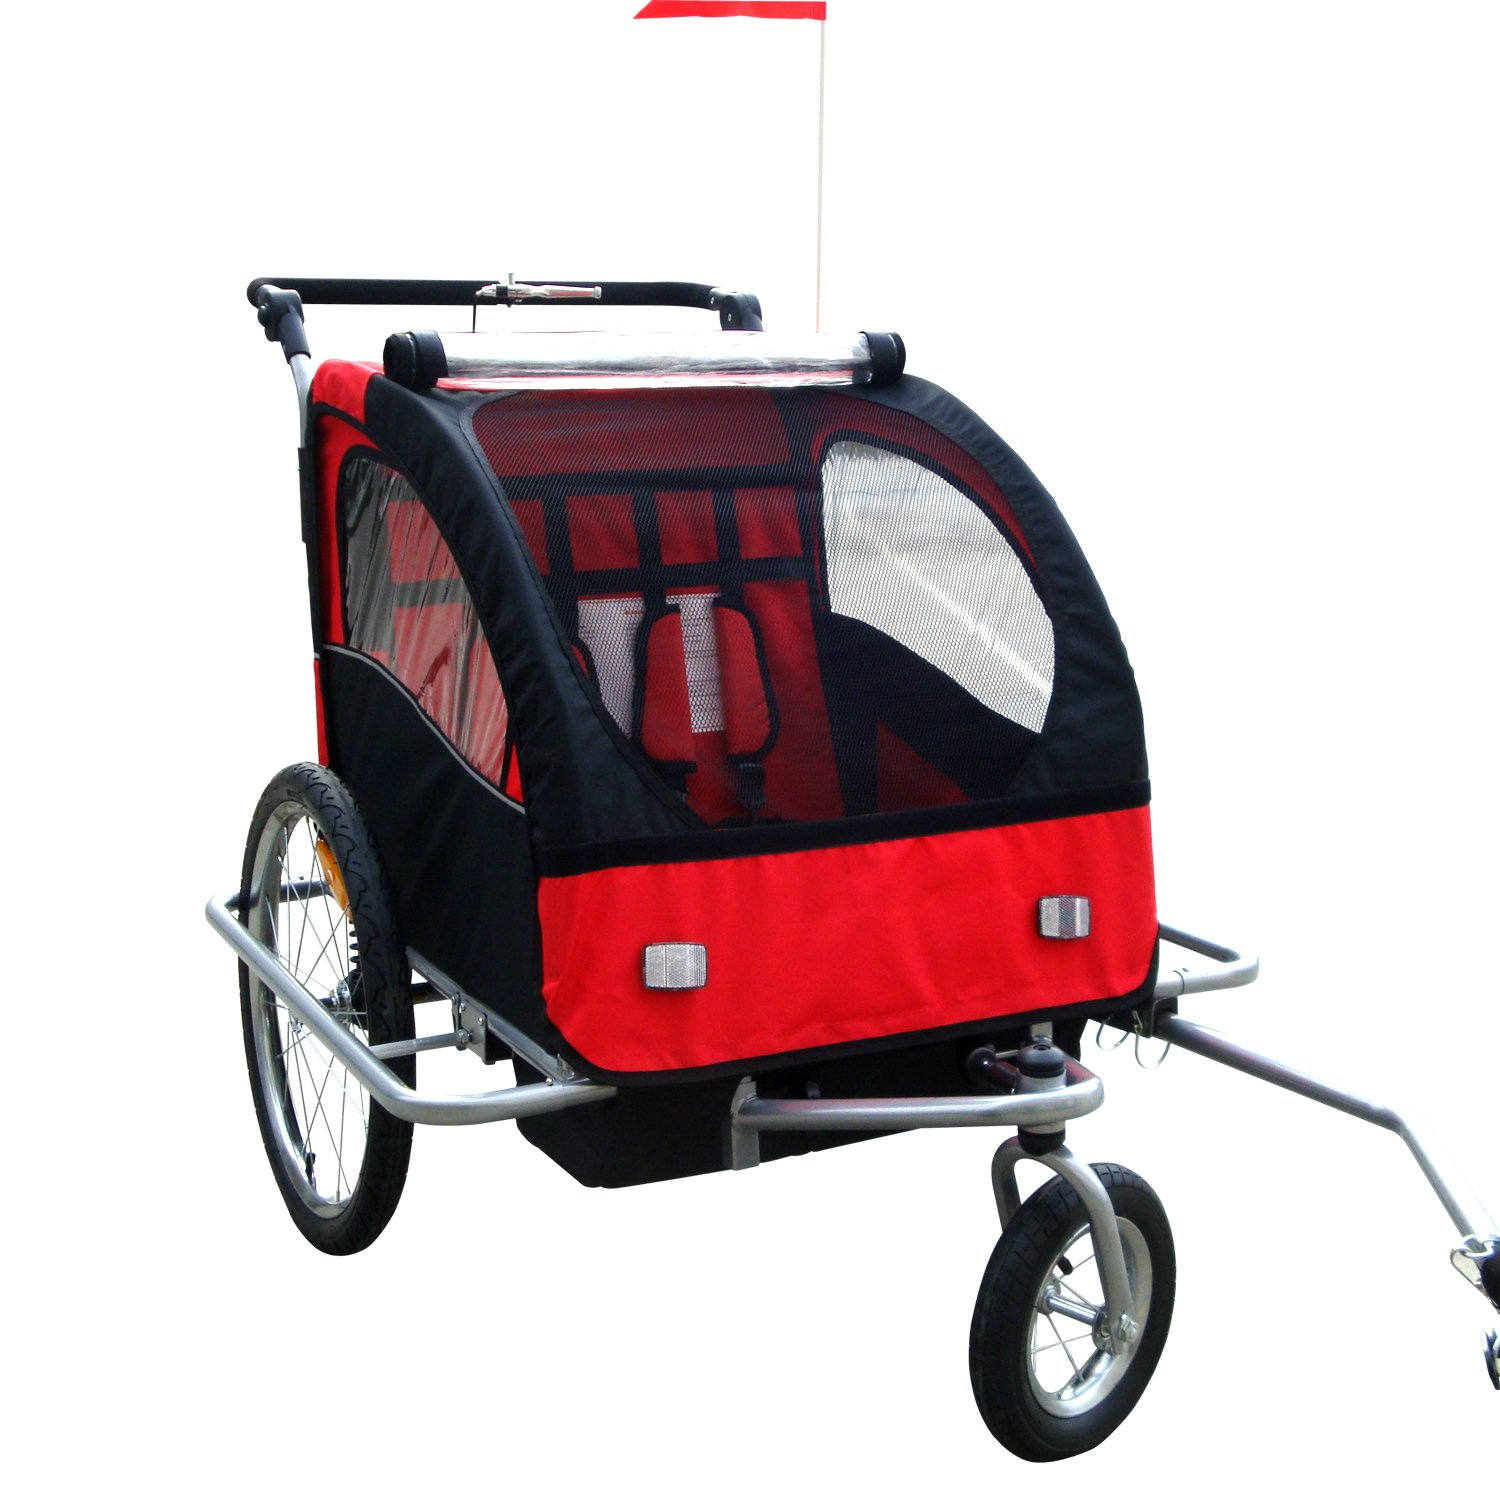 Tenive 2 in 1 Double Child Bicycle Trailer -4 Color Choice (Red)